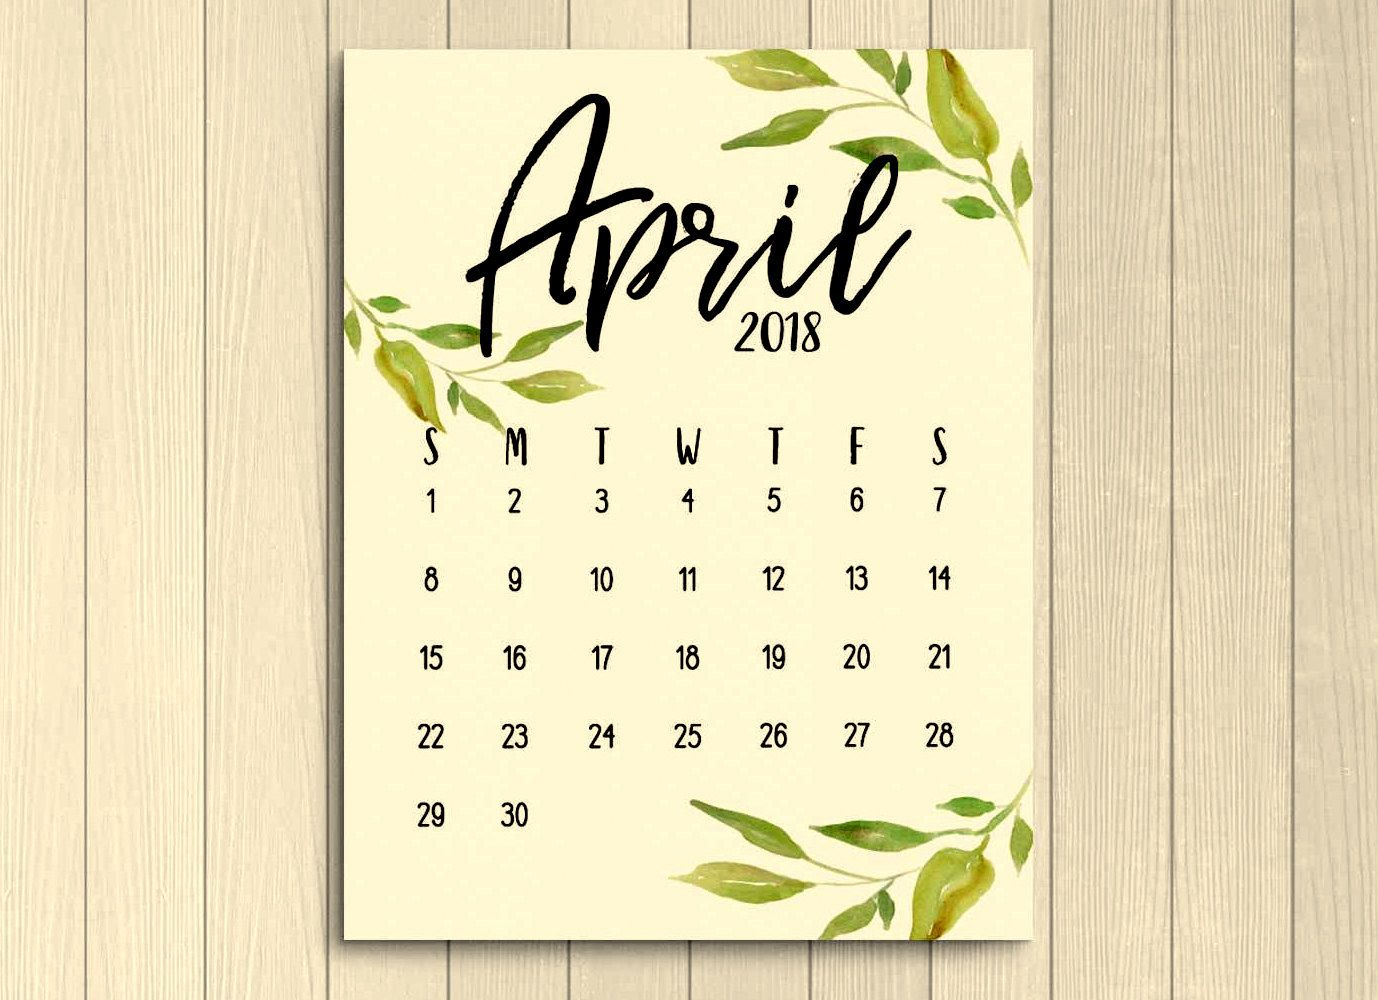 April 2018 Calendar Wallpaper 2018 Calendars Pinterest